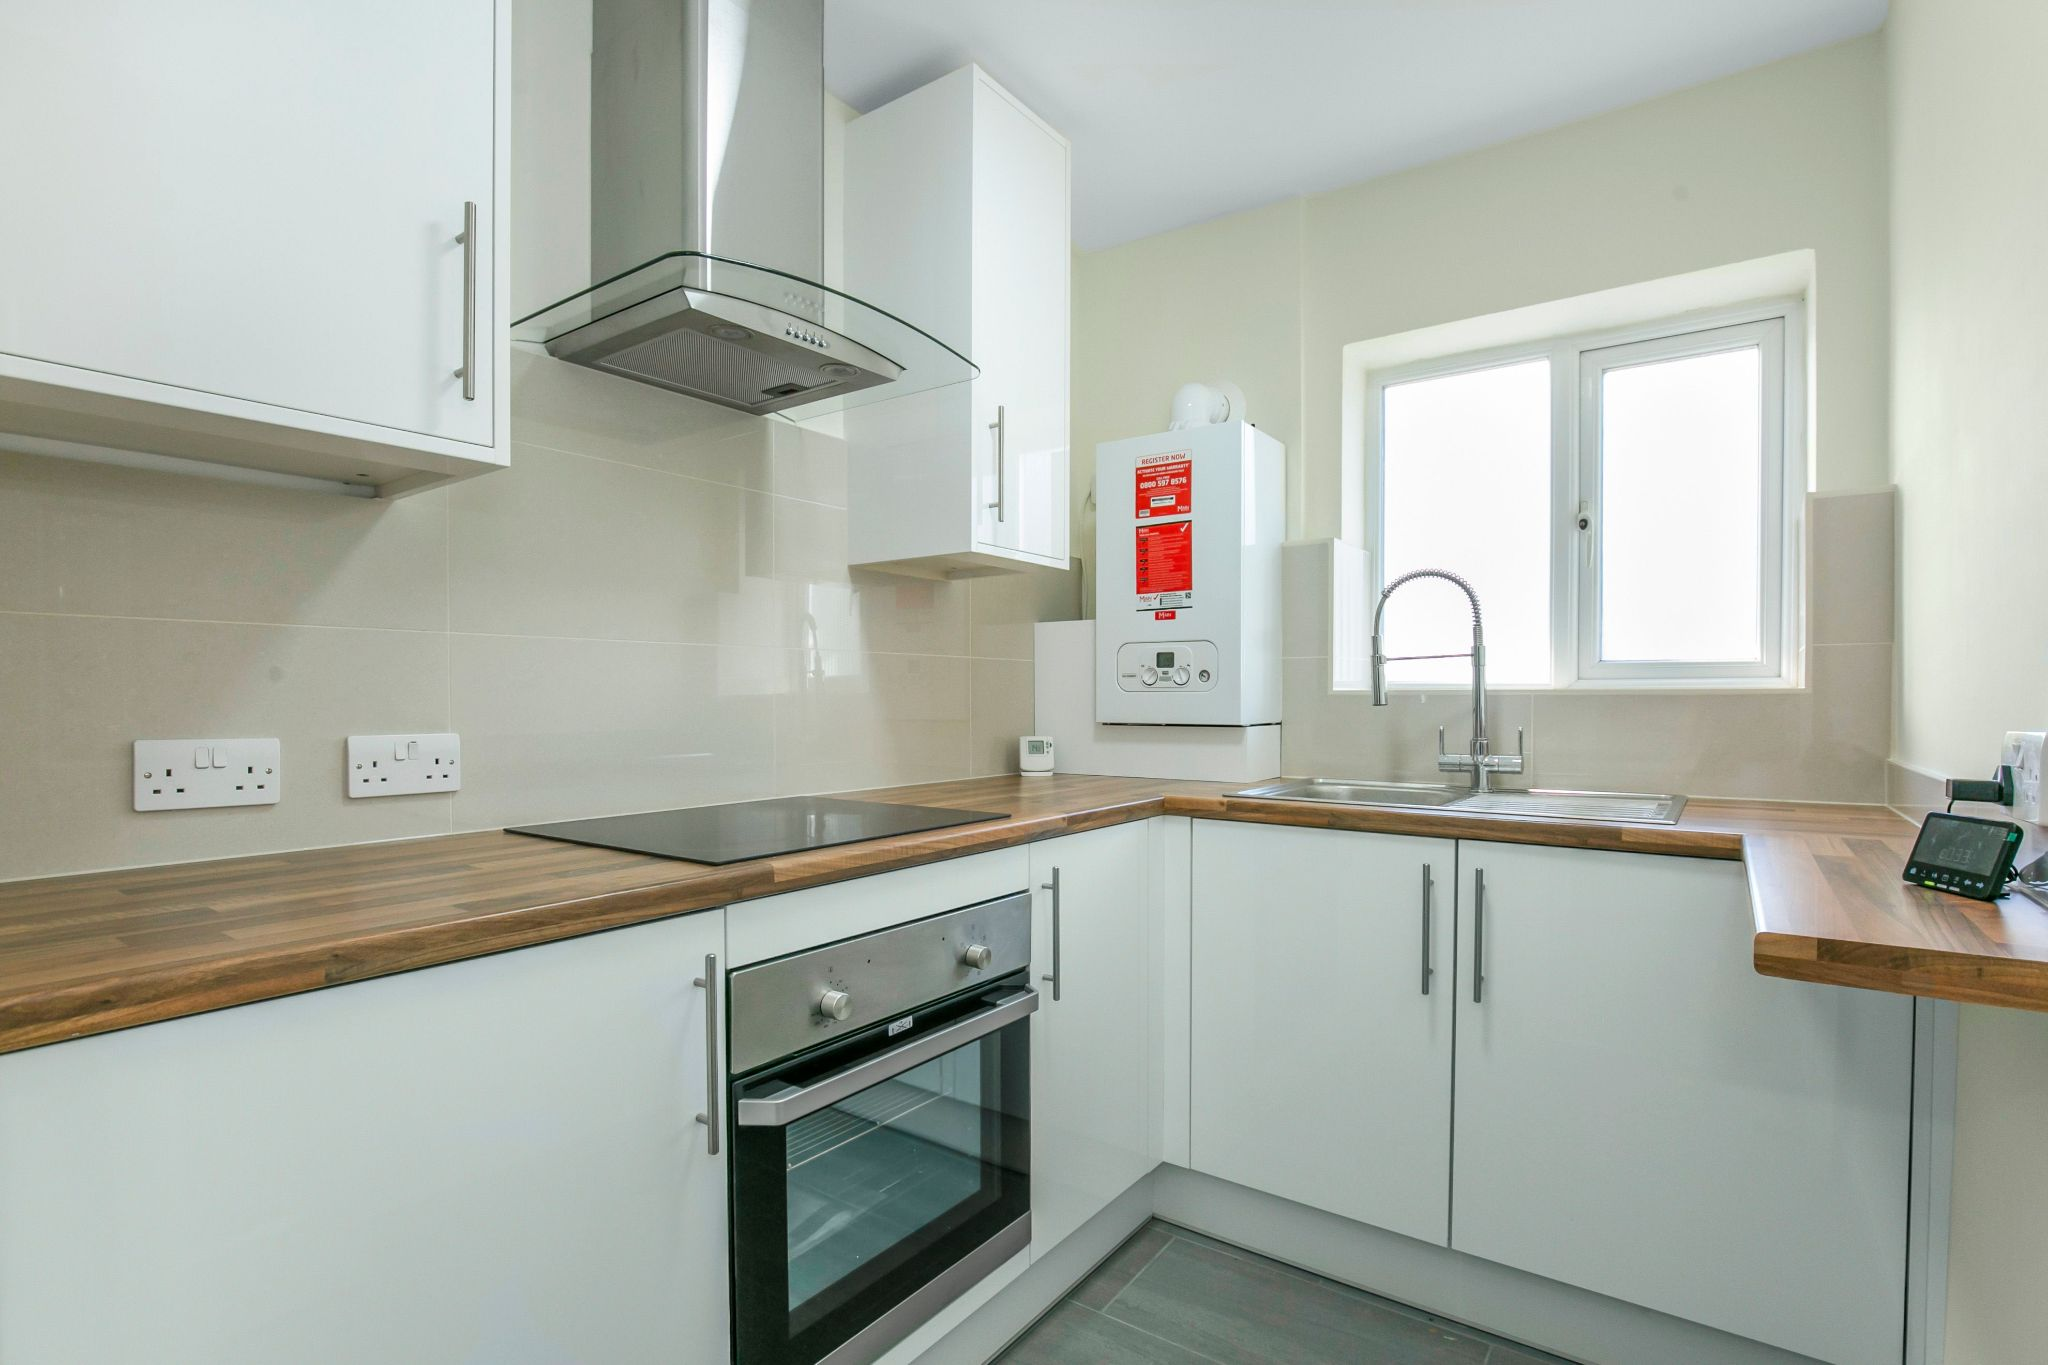 1 bedroom maisonette flat/apartment To Let in Potters Bar - Photograph 2